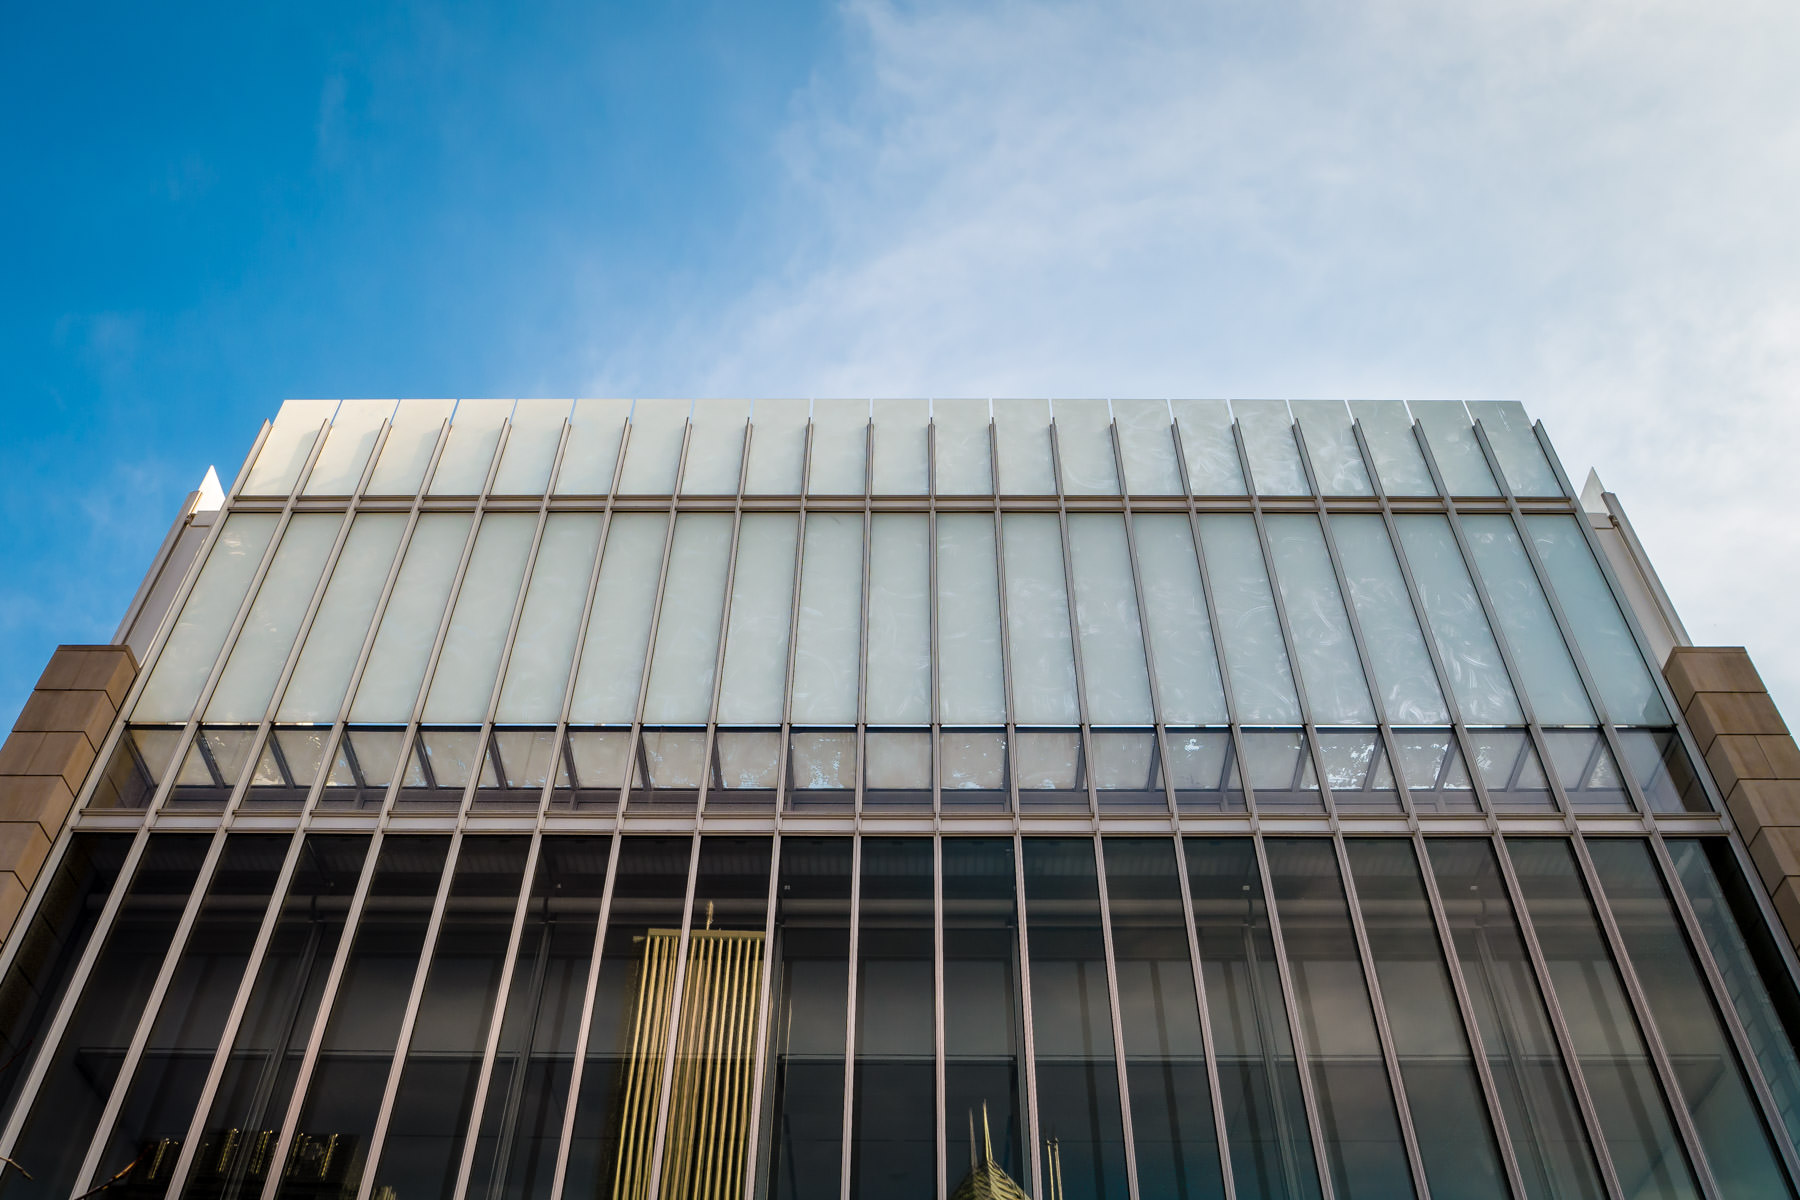 Exterior architectural detail of the Renzo Piano-designed Modern Wing of the Art Institute of Chicago.